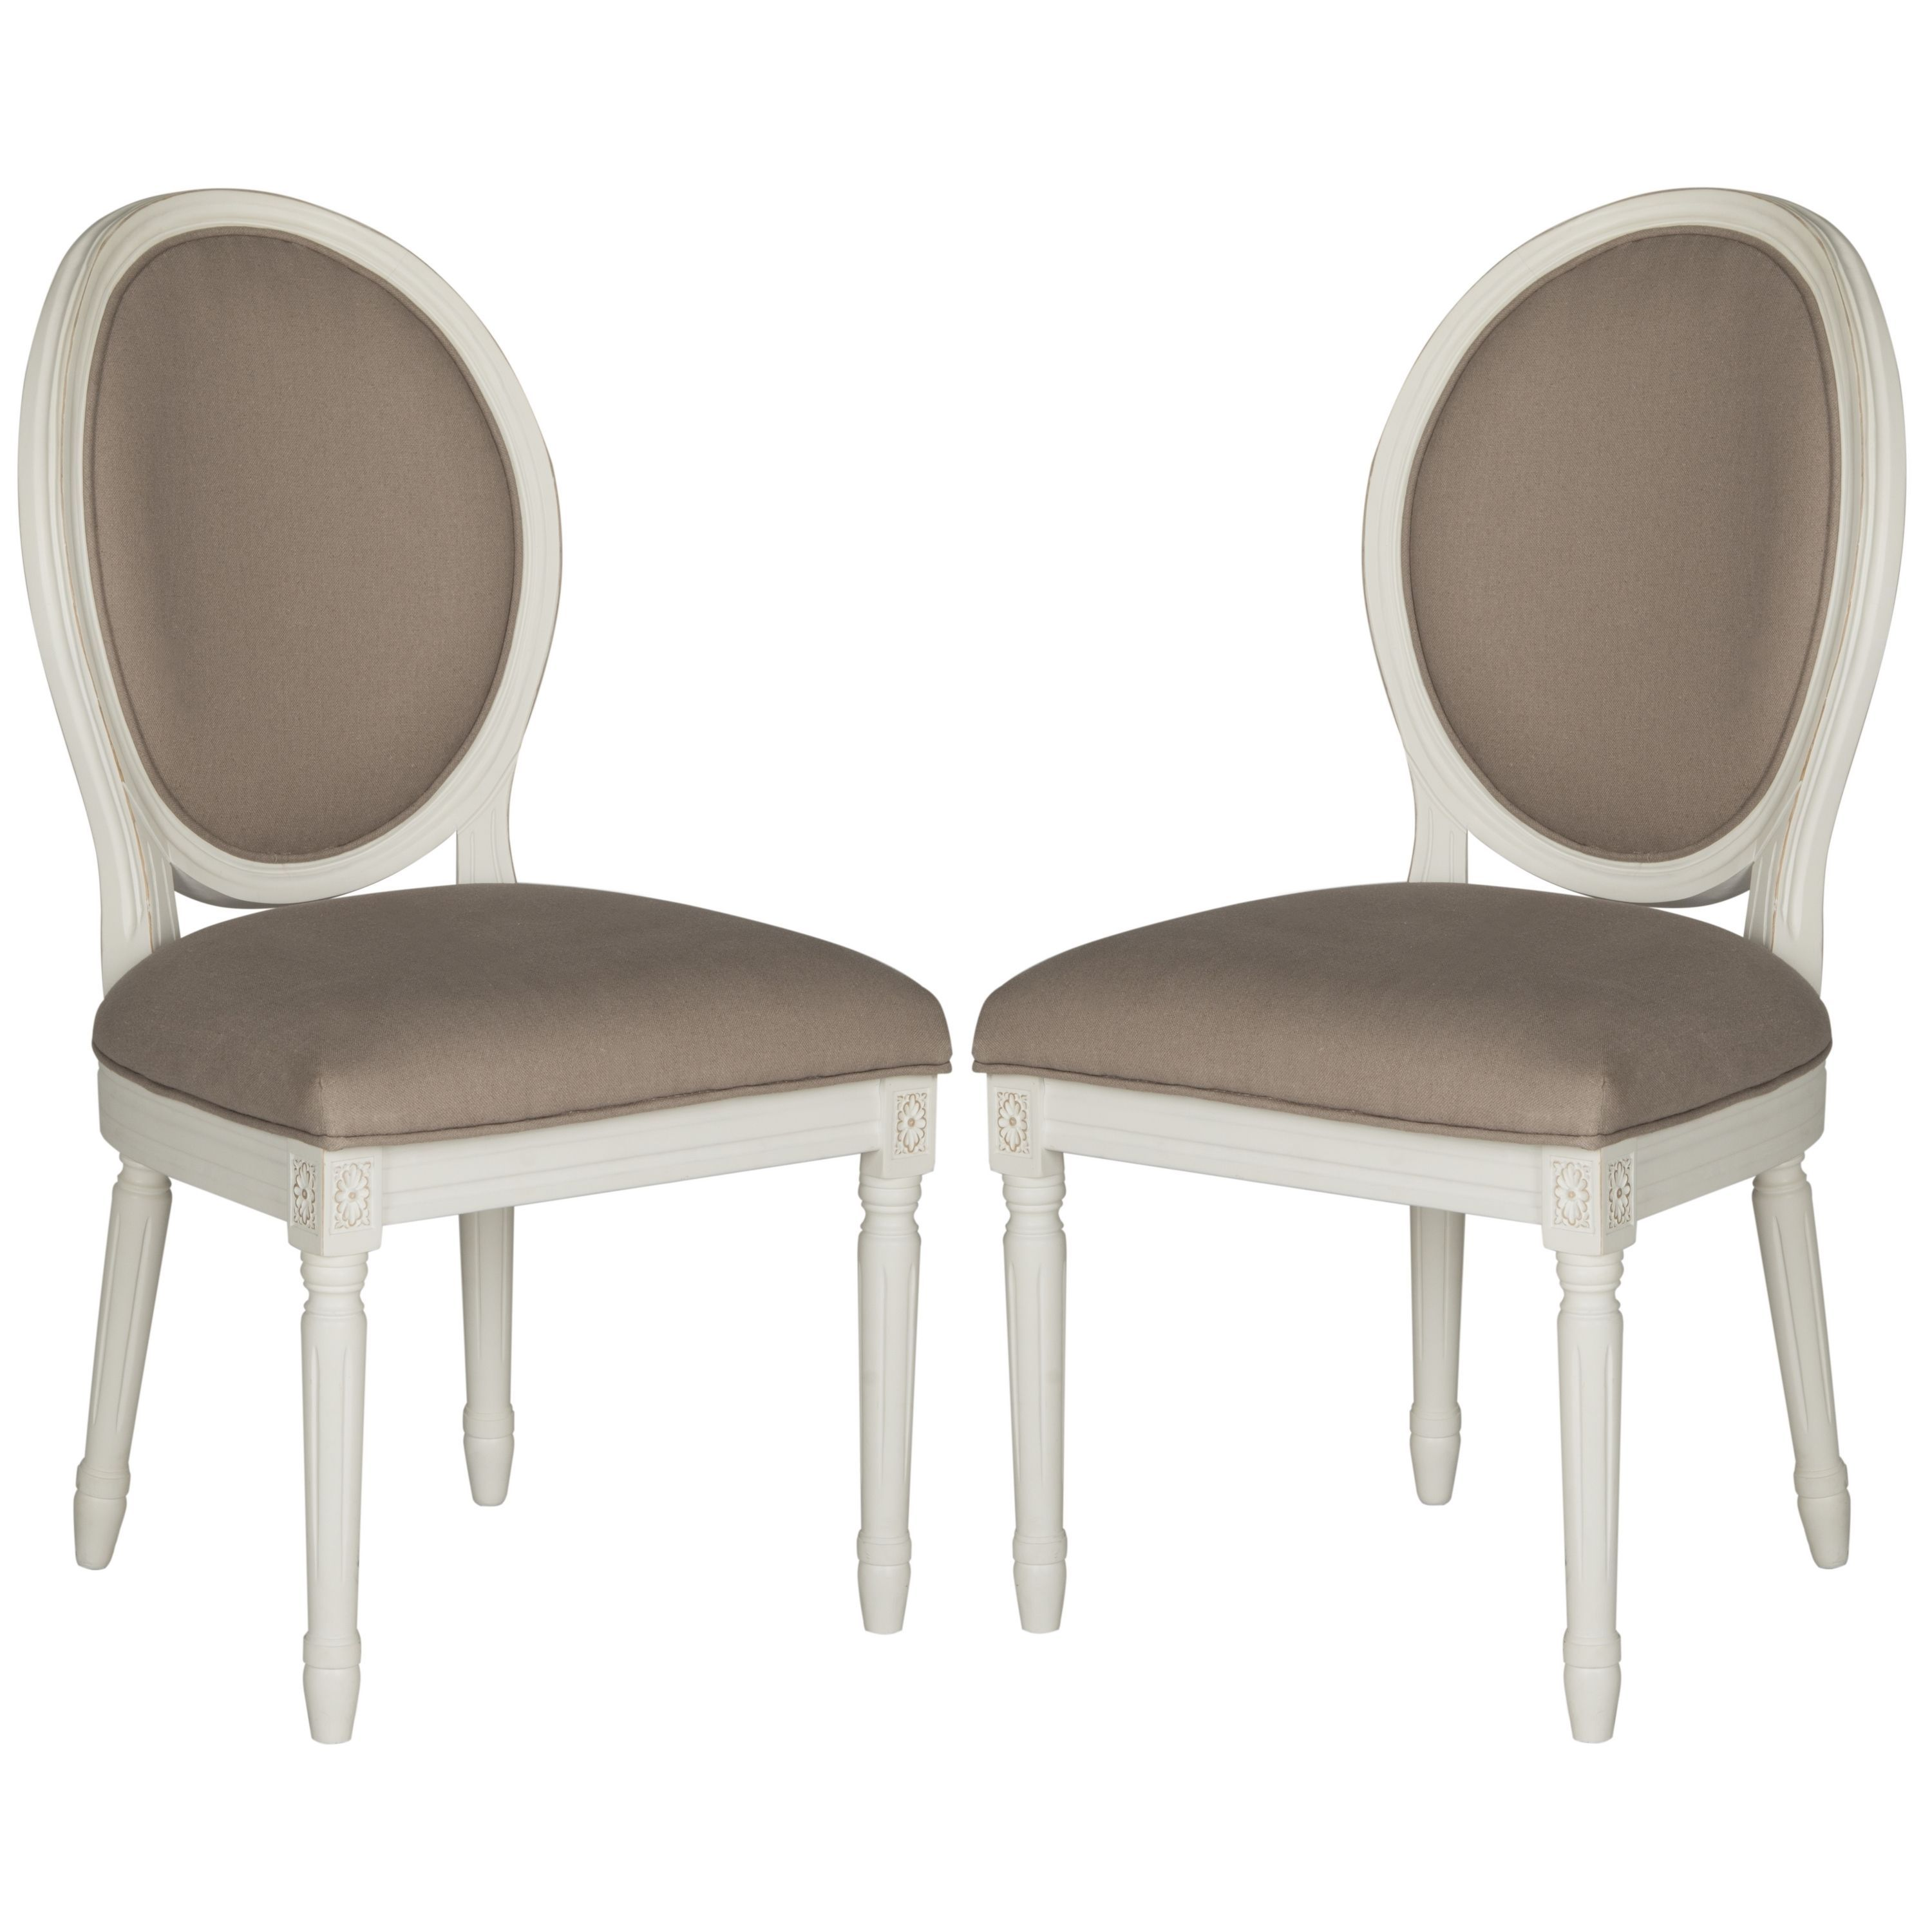 Safavieh Holloway Taupe Oval Side Chair (Set of 2) (As Is Item ...